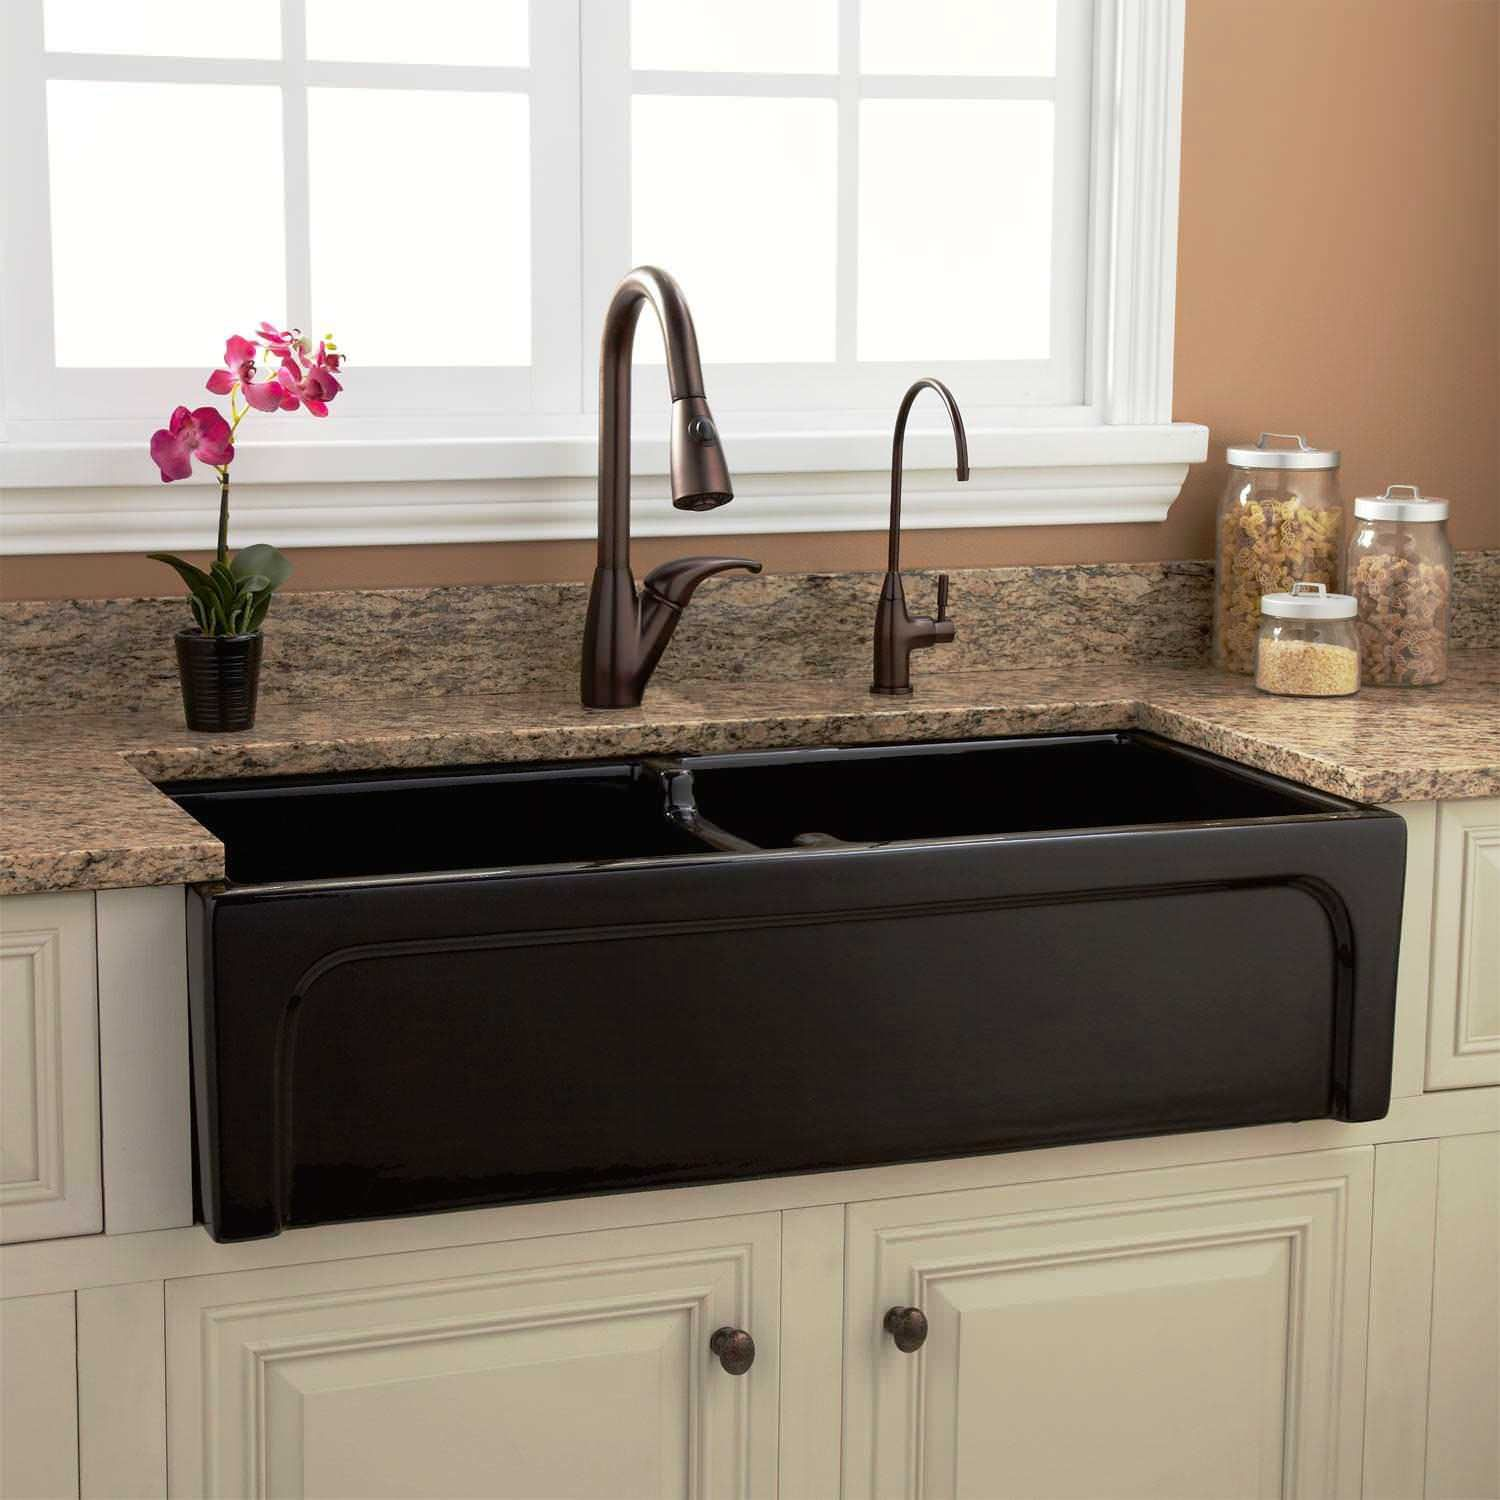 Fantastic Farmhouse Sinks For Sale Rectangle Dark Double Bowl